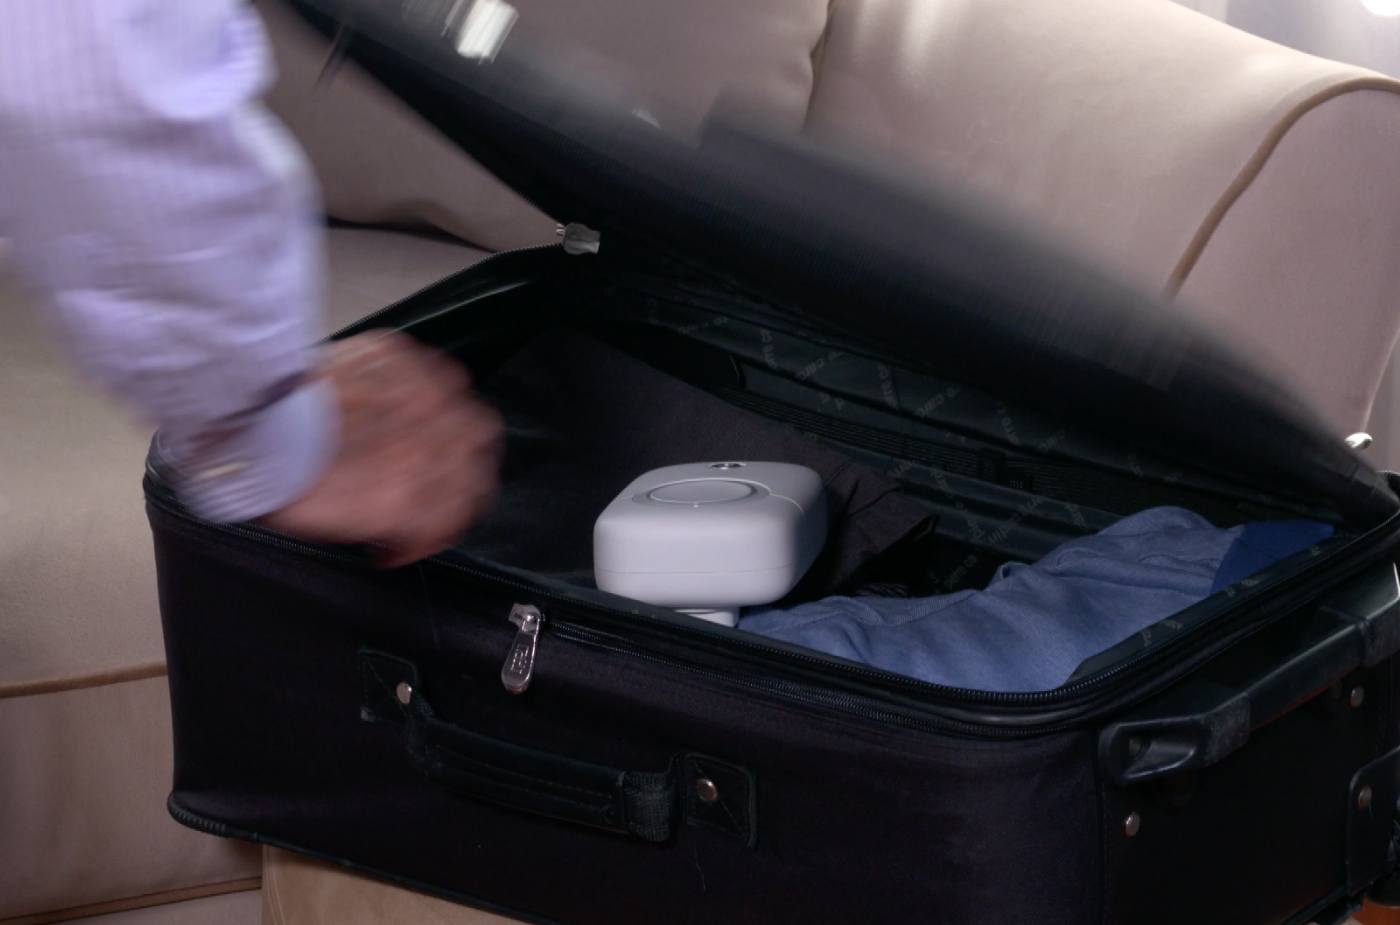 Compact and portable – fits in a suitcase easily